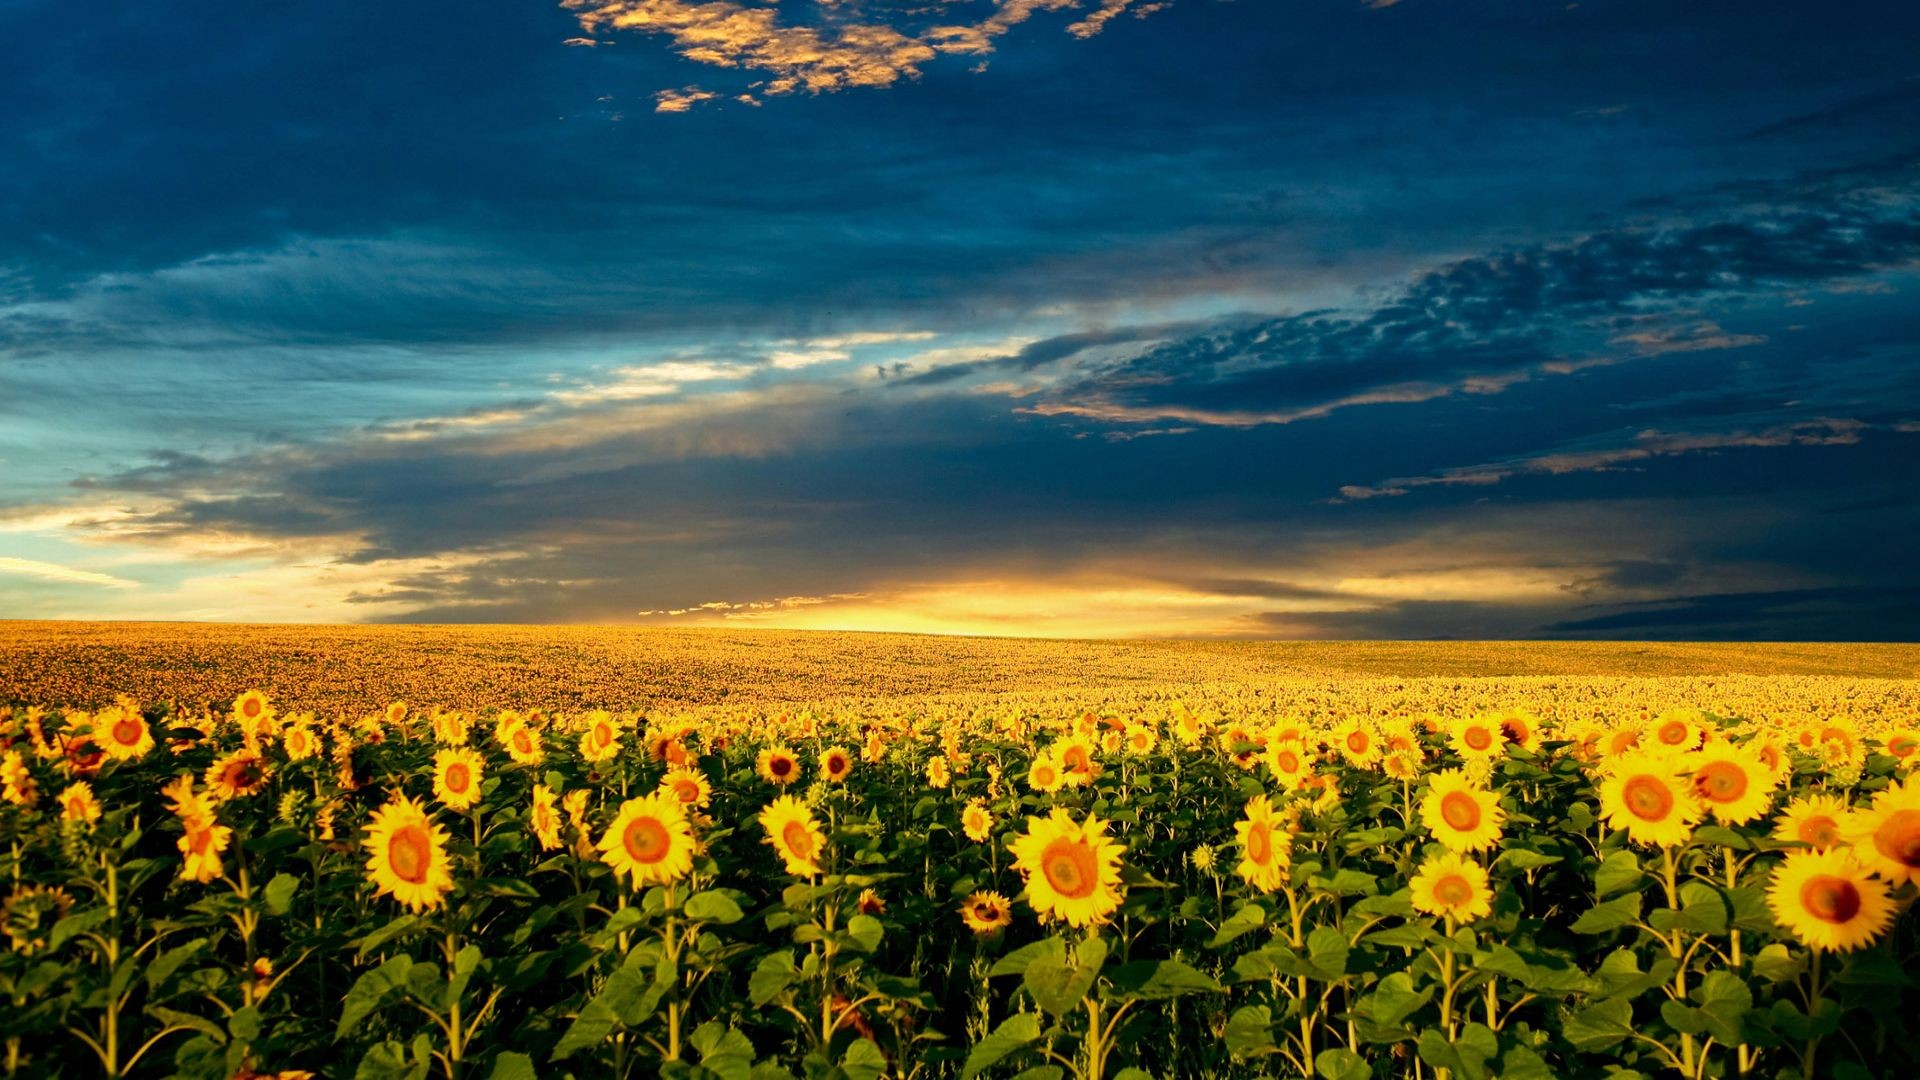 Free Wallpaper For Your Desktop And Ipad: Sunflower Wallpaper ·① Download Free Stunning HD